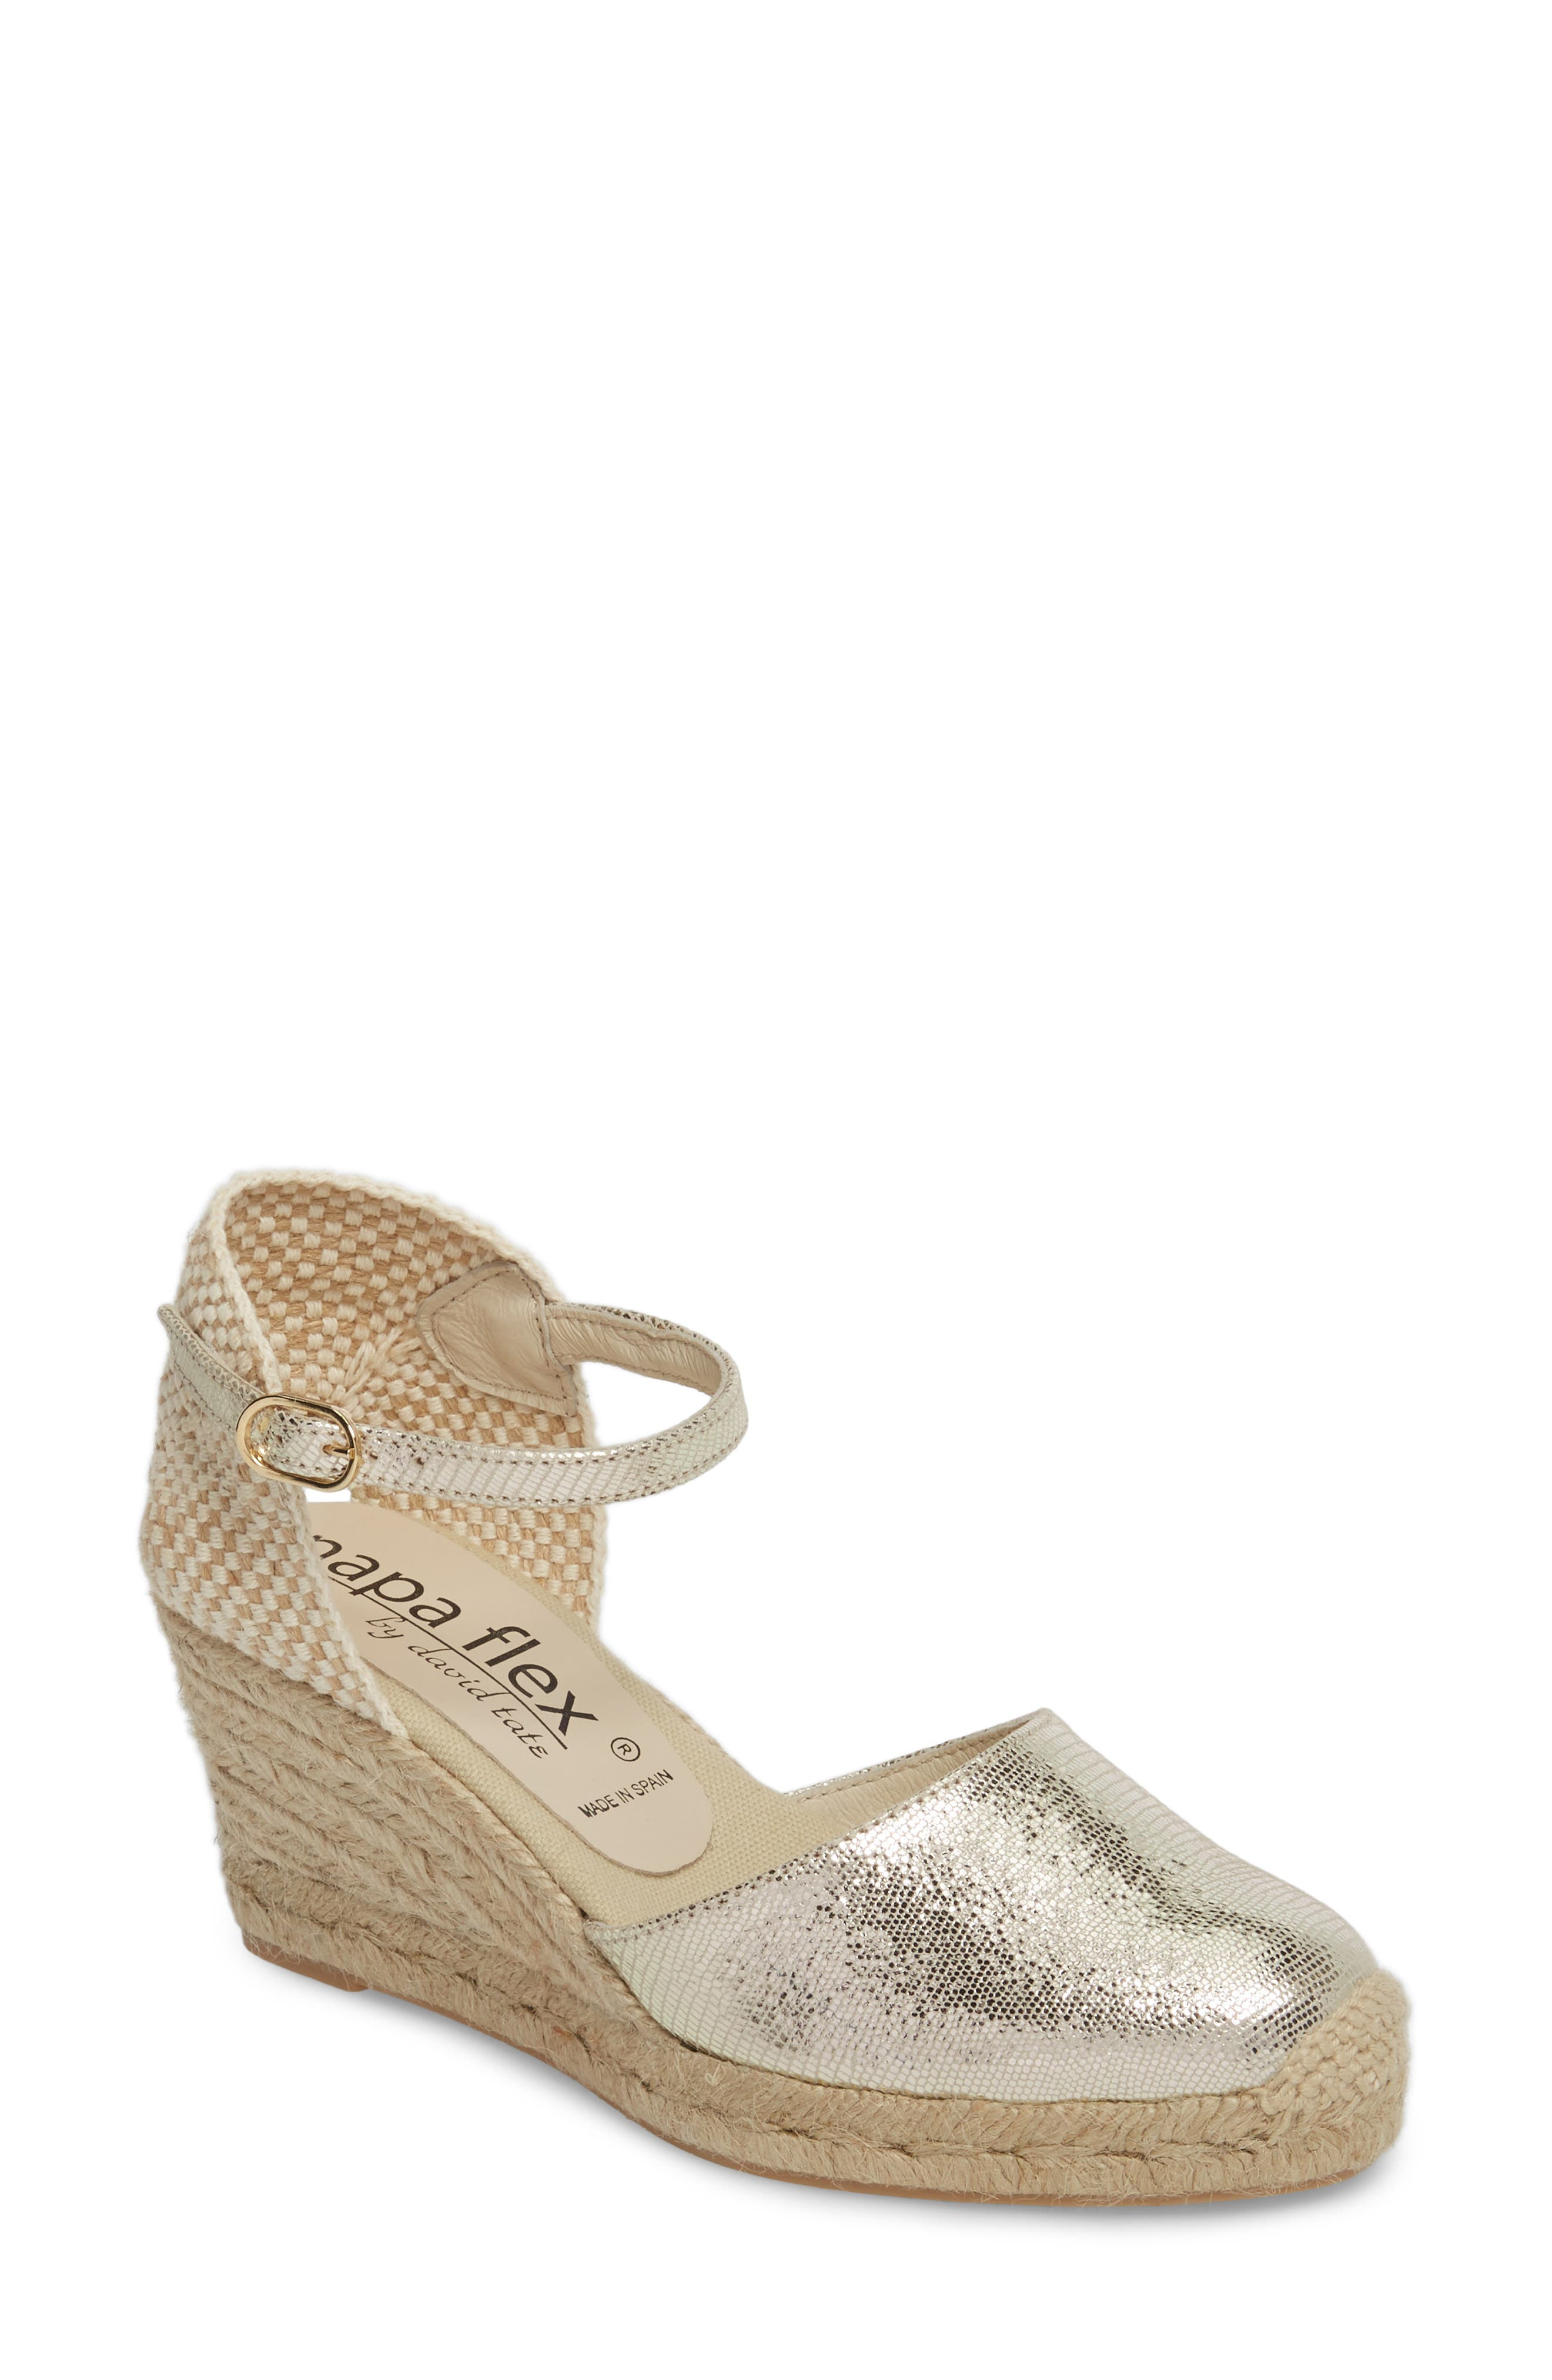 Europa Wedge Sandal,                             Main thumbnail 1, color,                             Gold Lizard Printed Leather